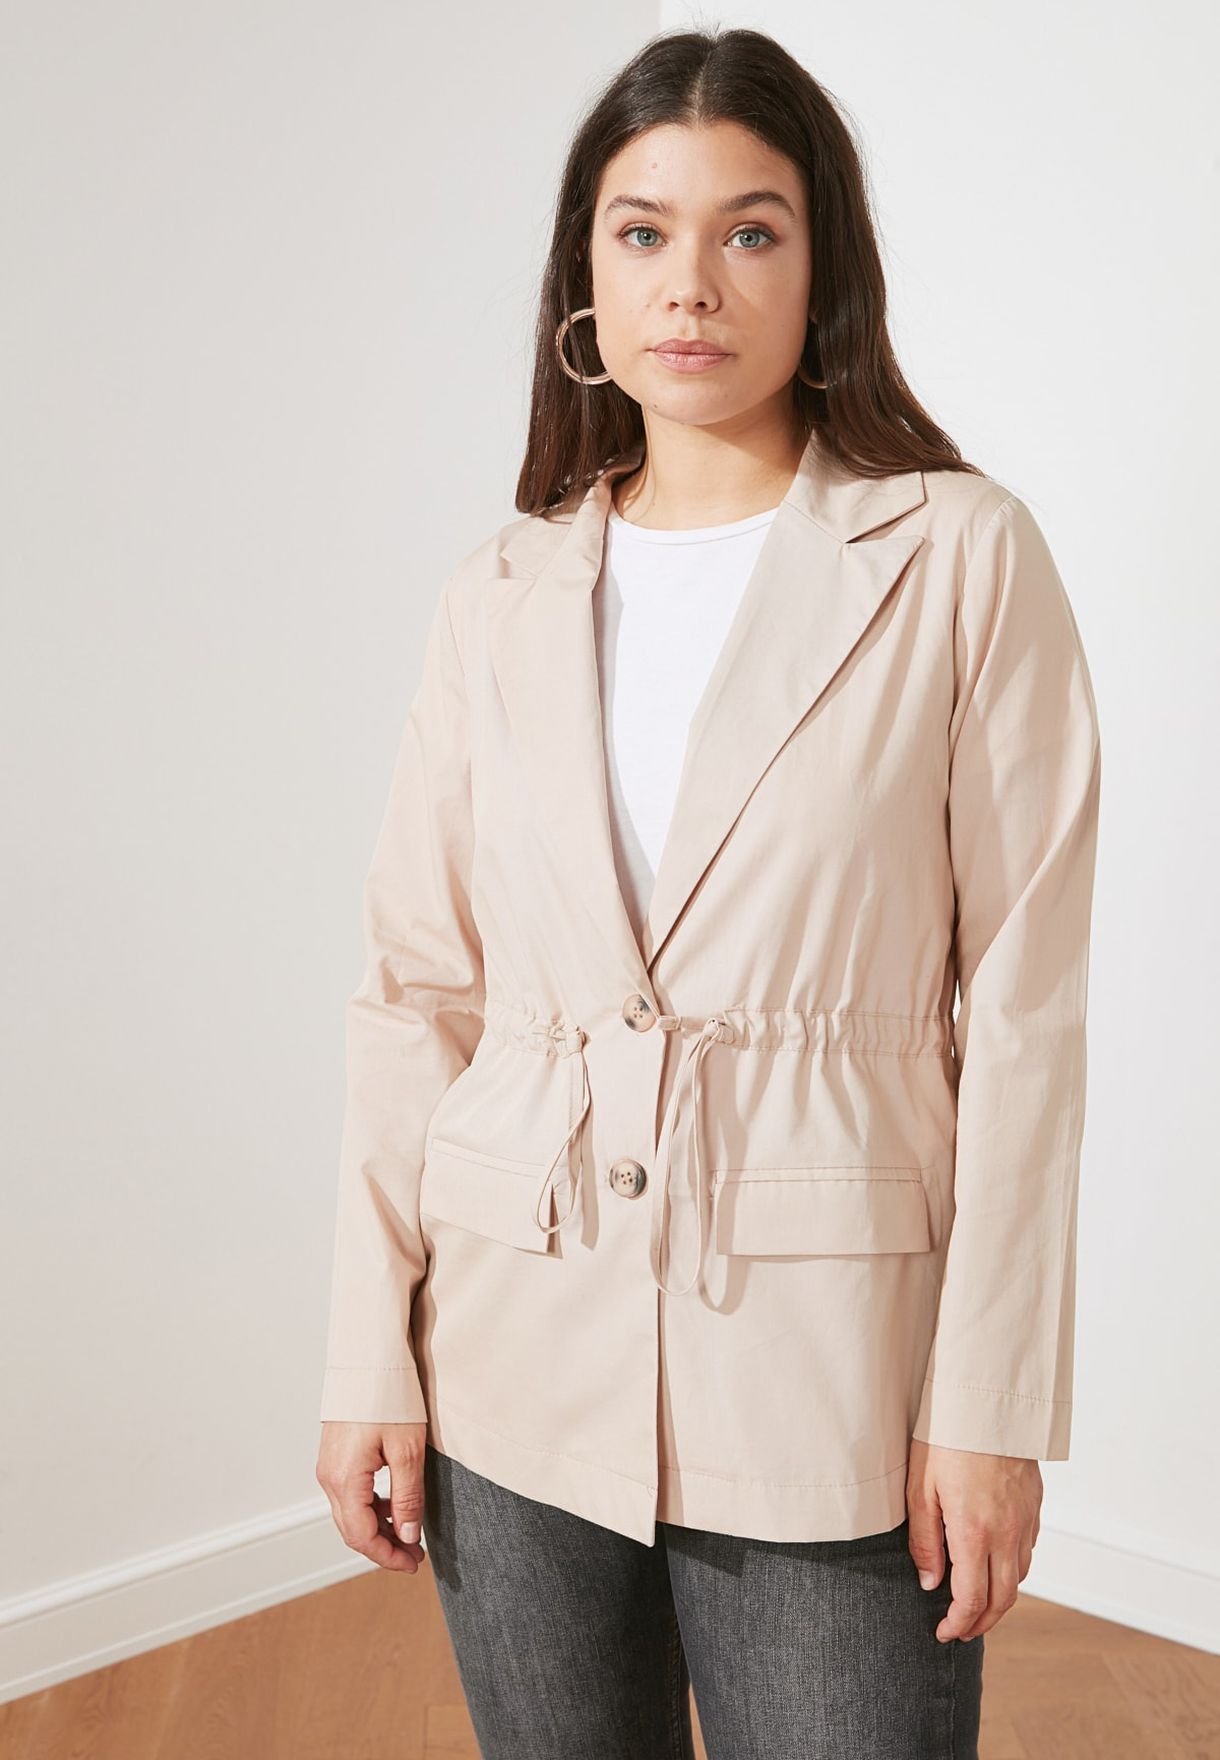 Ruched Detail Jacket